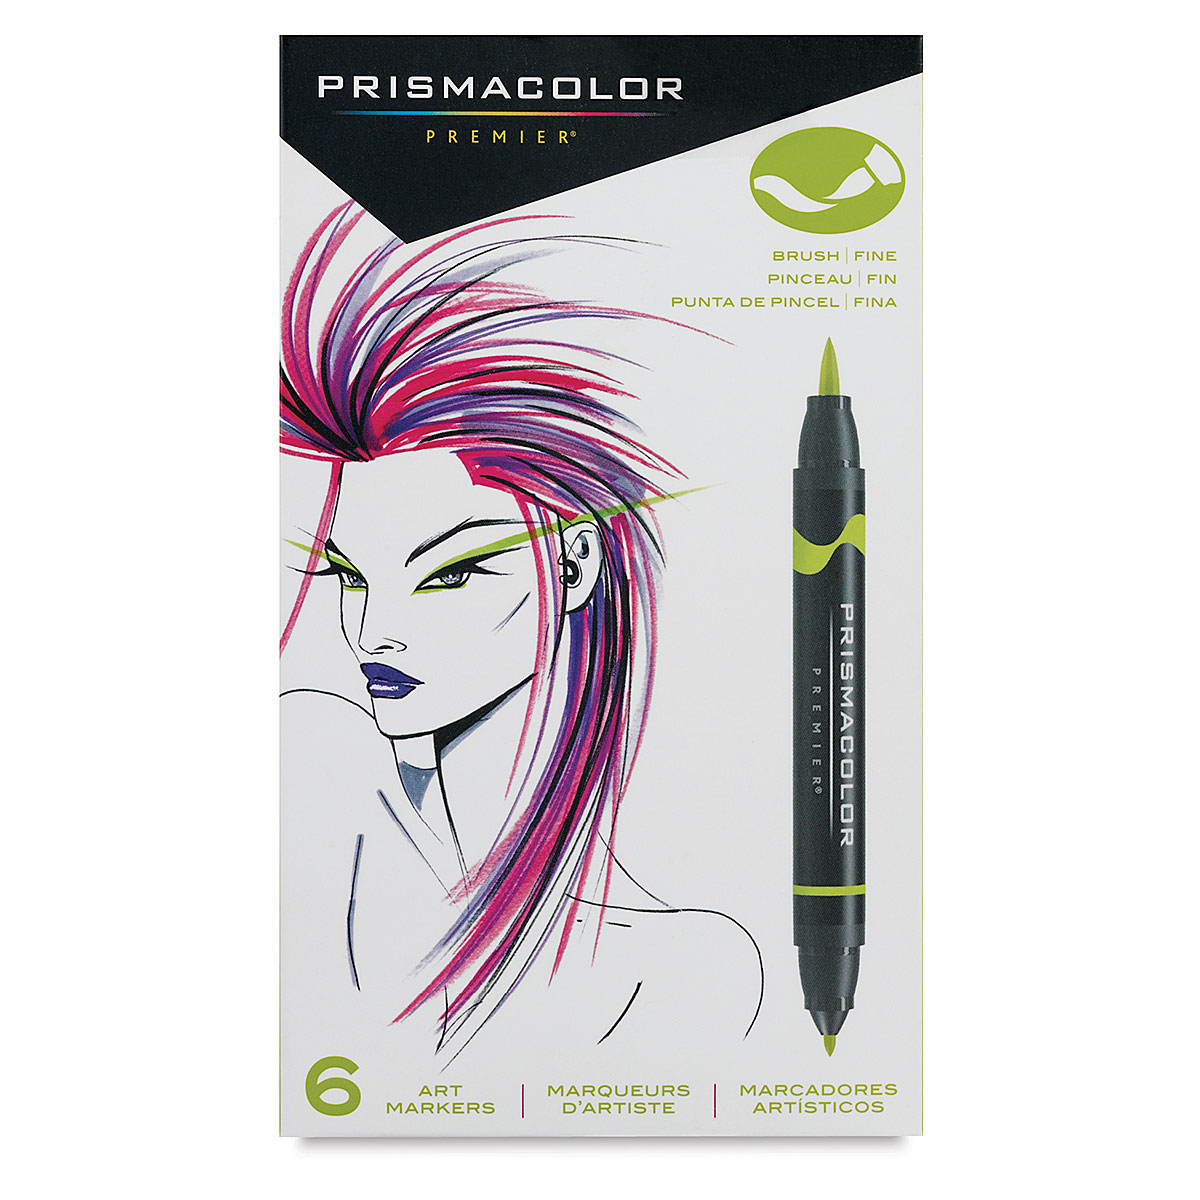 Prismacolor Premier Double-Ended Brush Tip Markers and Sets